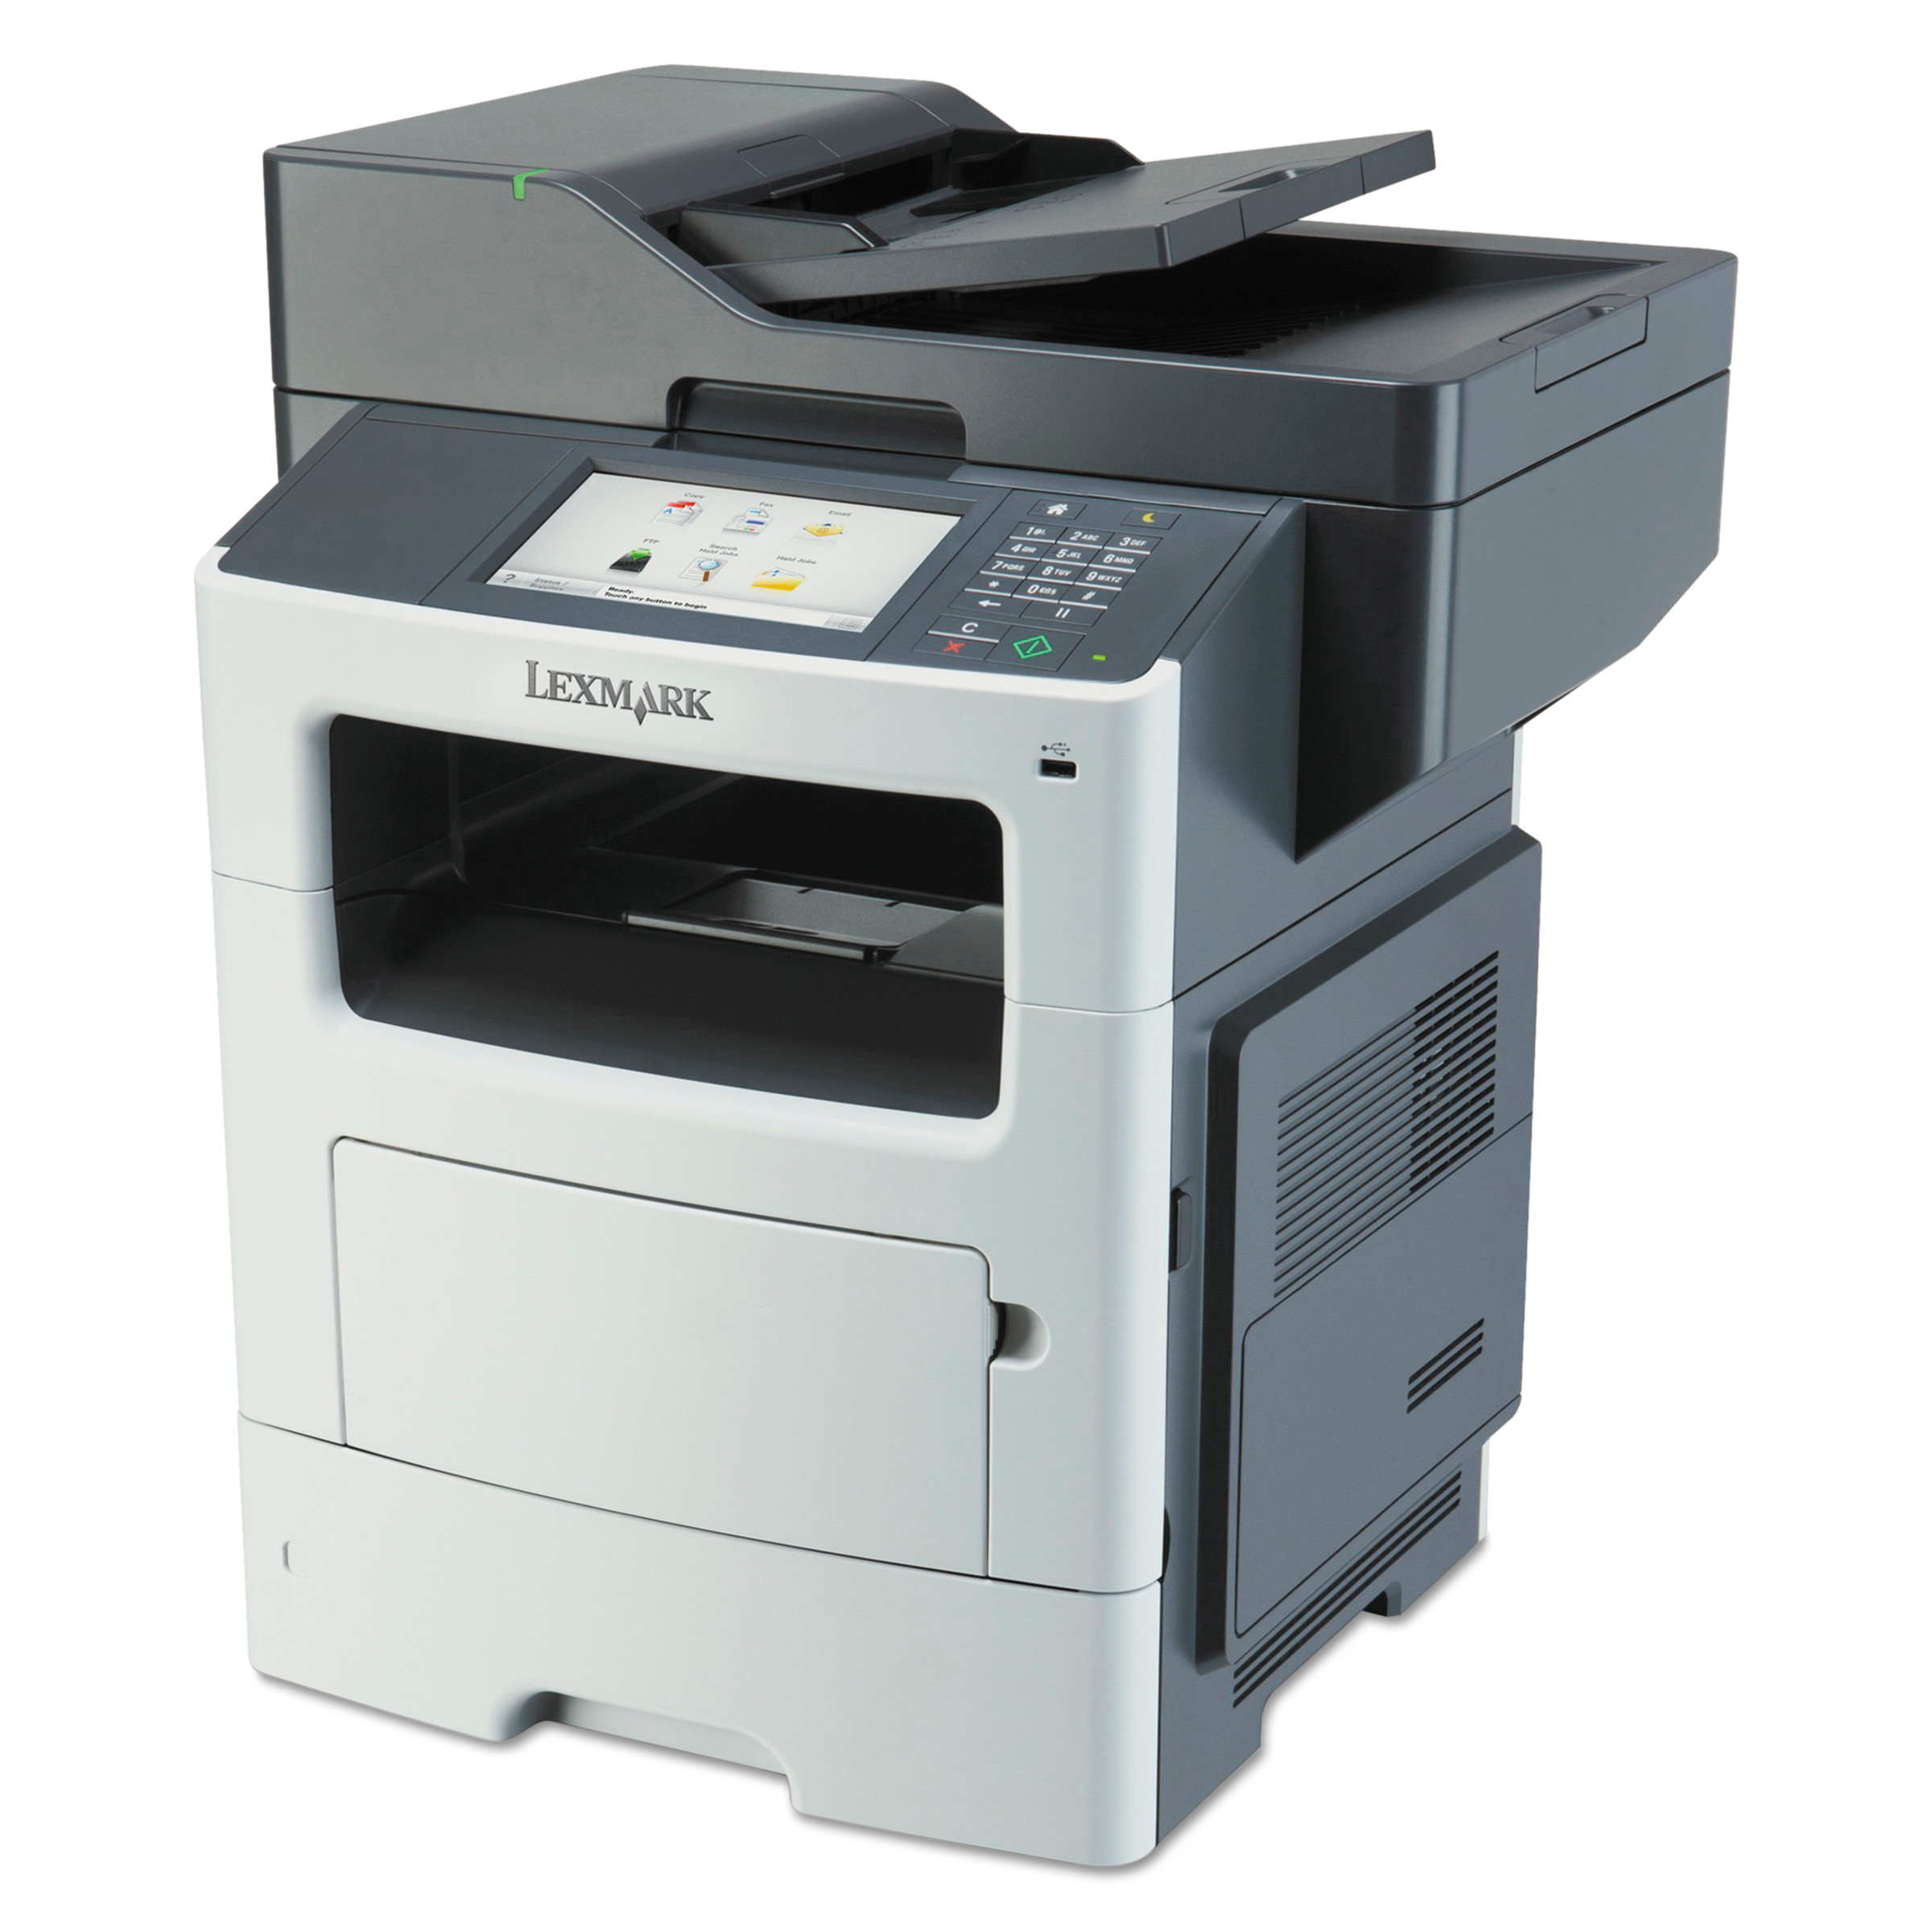 Lexmark MX611dhe Multifunction Laser Printer, Copy Fax Print Scan by Lexmark